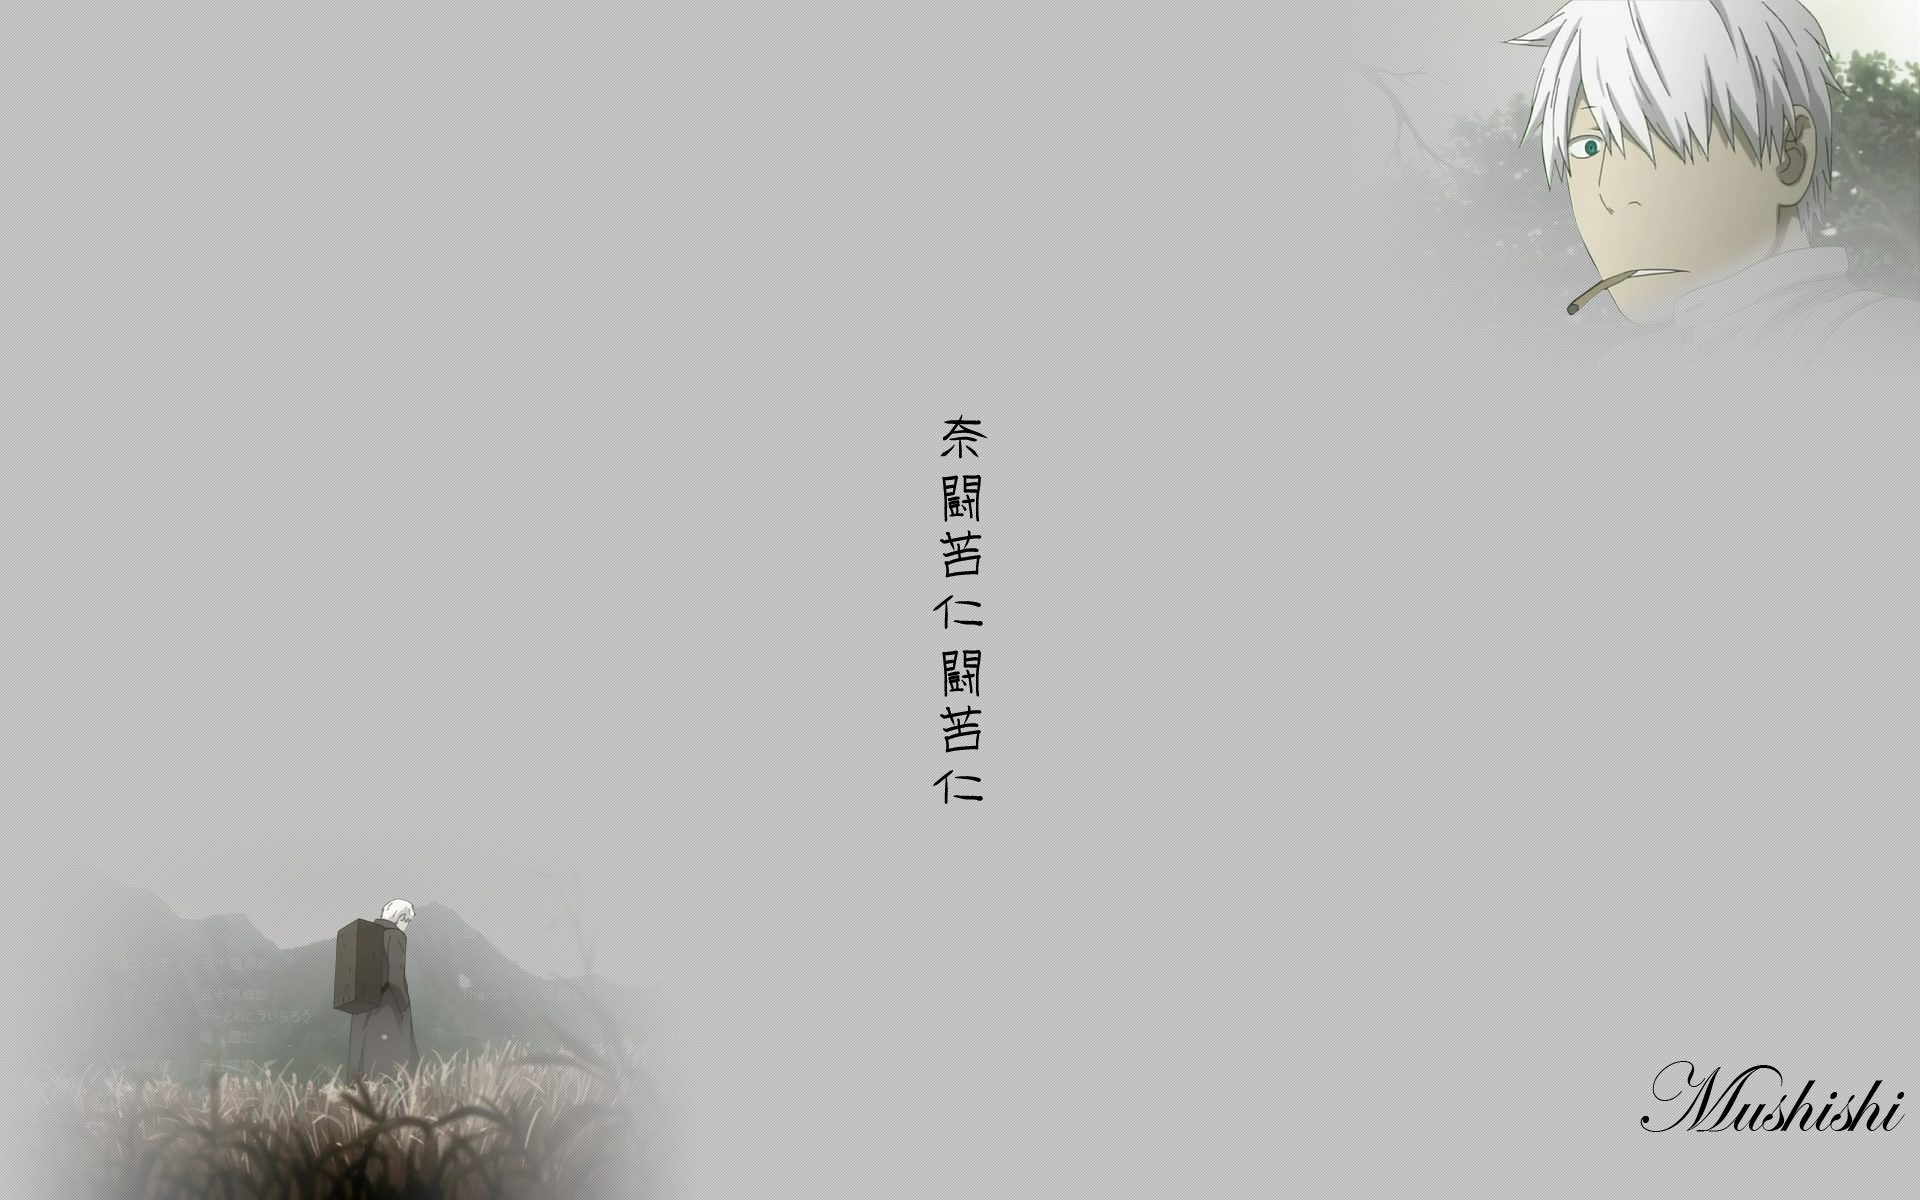 Mushishi Wall by lDragl 1920x1200